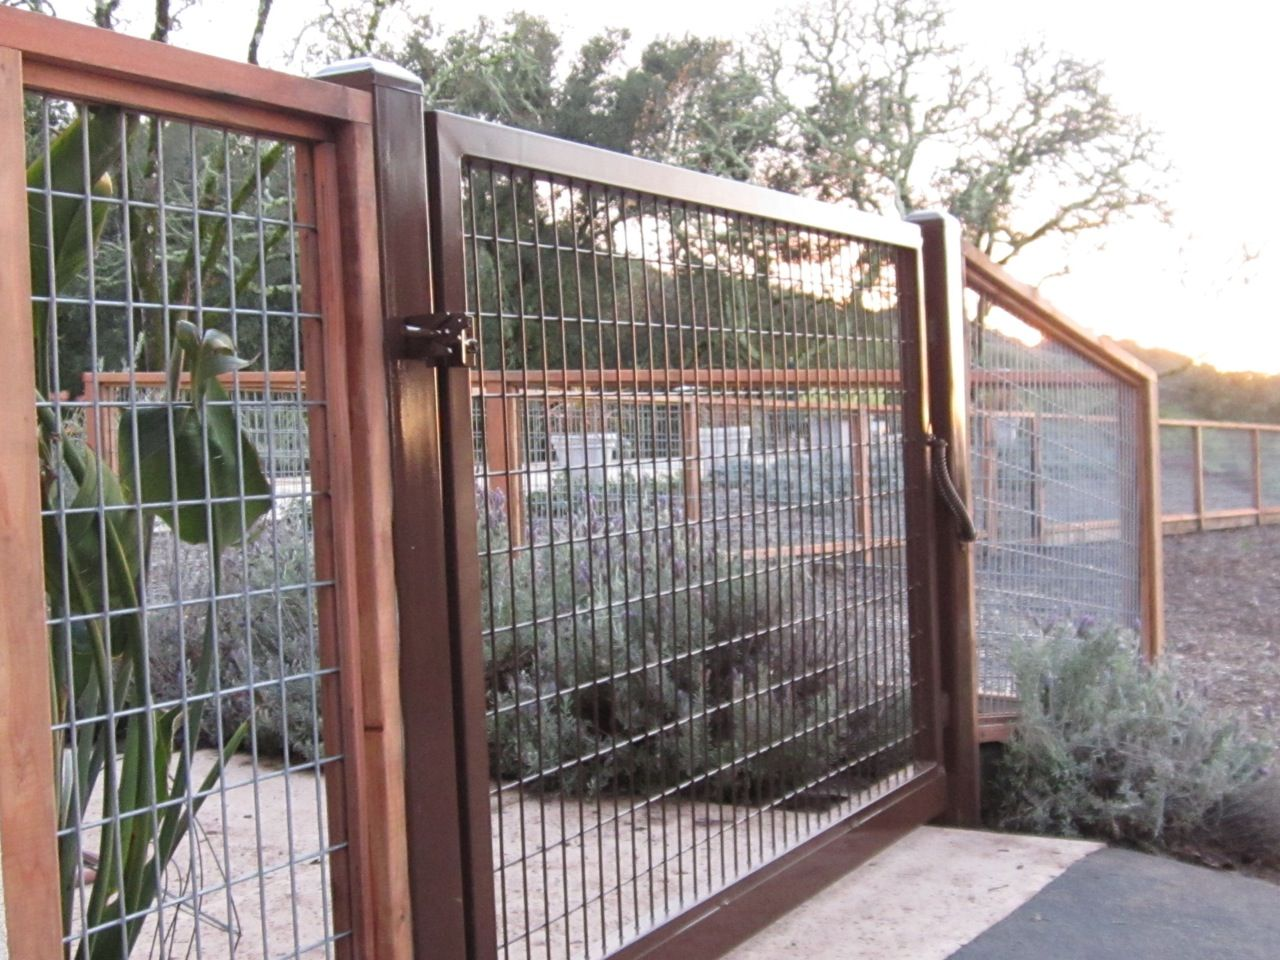 Image of: Hog Wire Fencing Type | fencing in 2018 | Pinterest | Hog ...